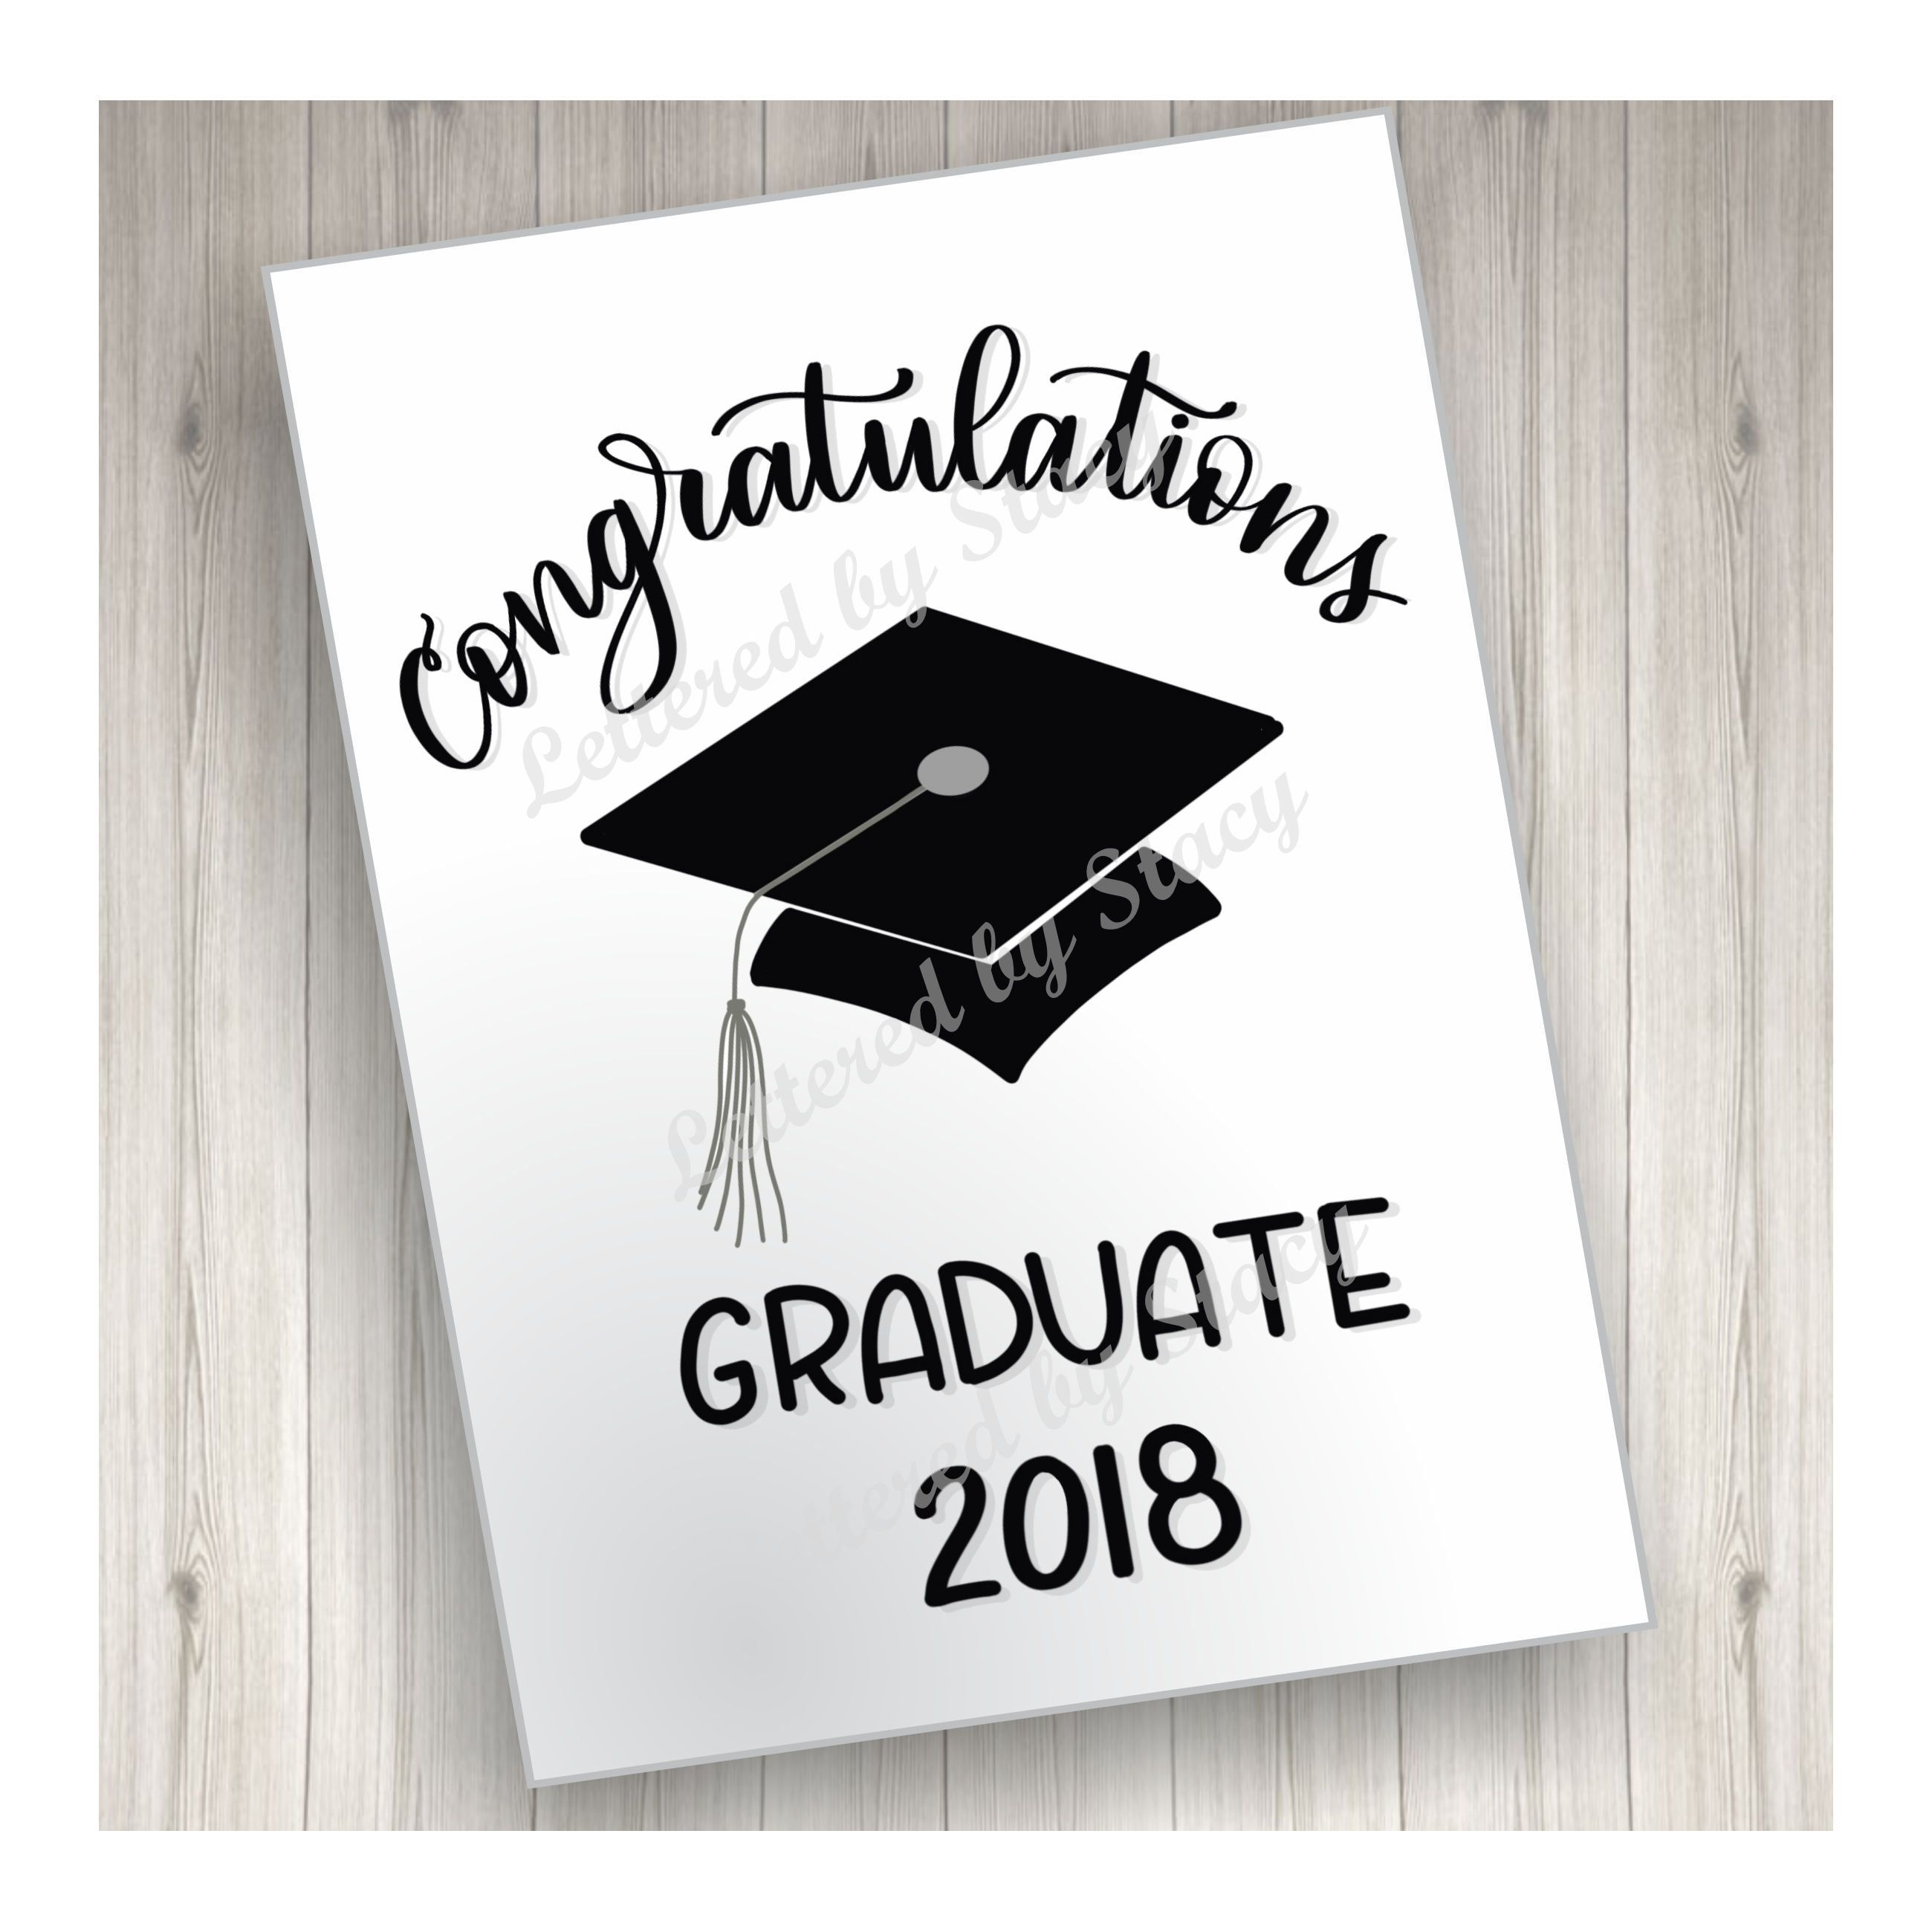 Graduation Card Congratulations Graduate With Cap And Year 2018